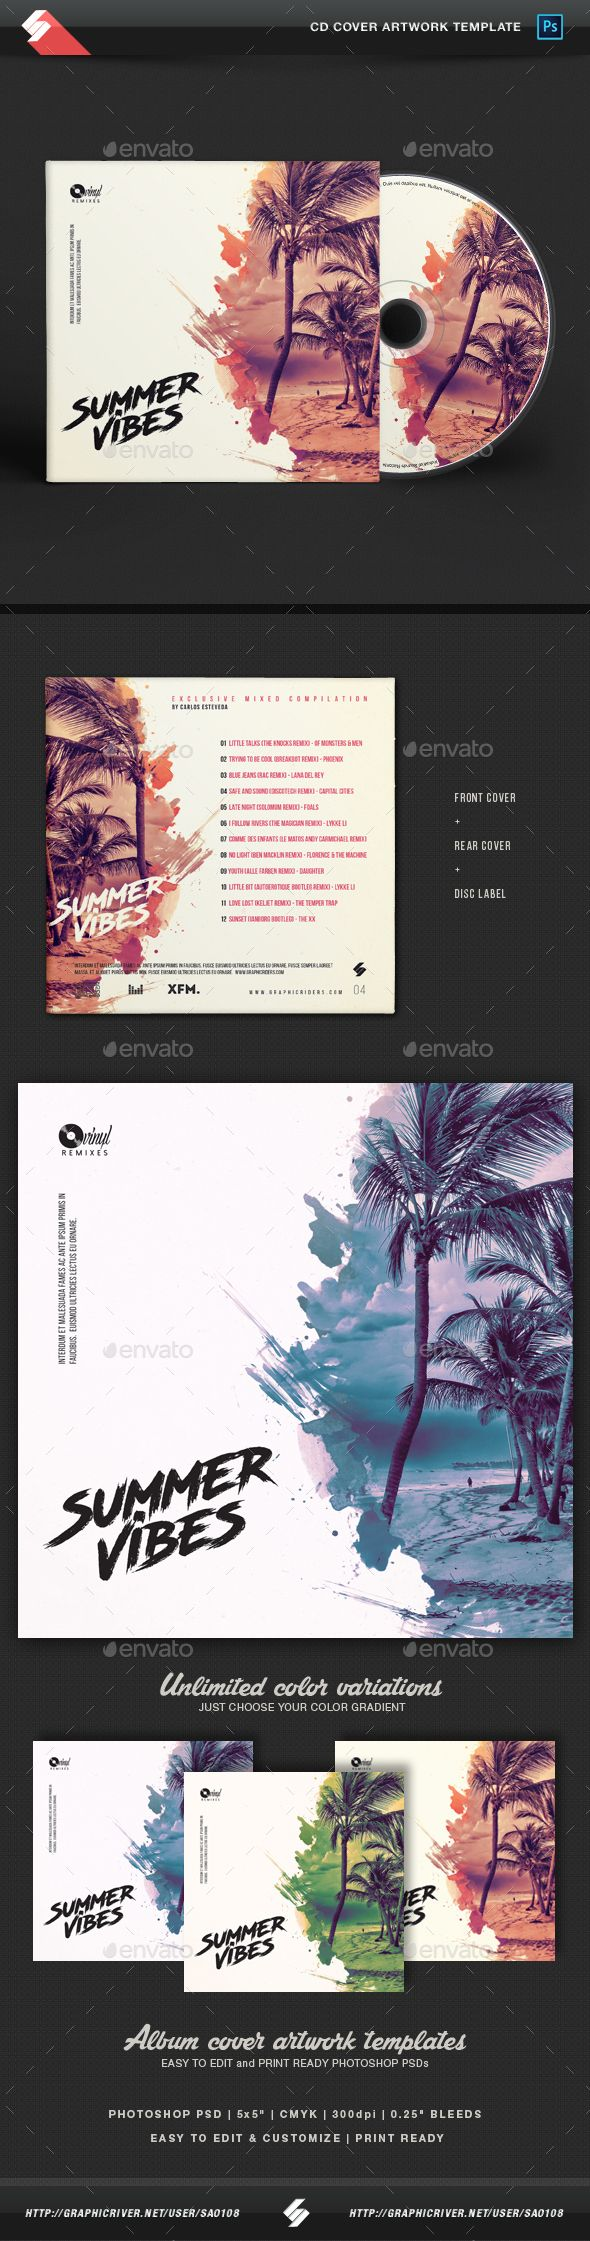 Summer Vibes vol.4 - CD Cover Artwork Template PSD. Download here: https://graphicriver.net/item/summer-vibes-vol4-cd-cover-artwork-template/17280359?ref=ksioks